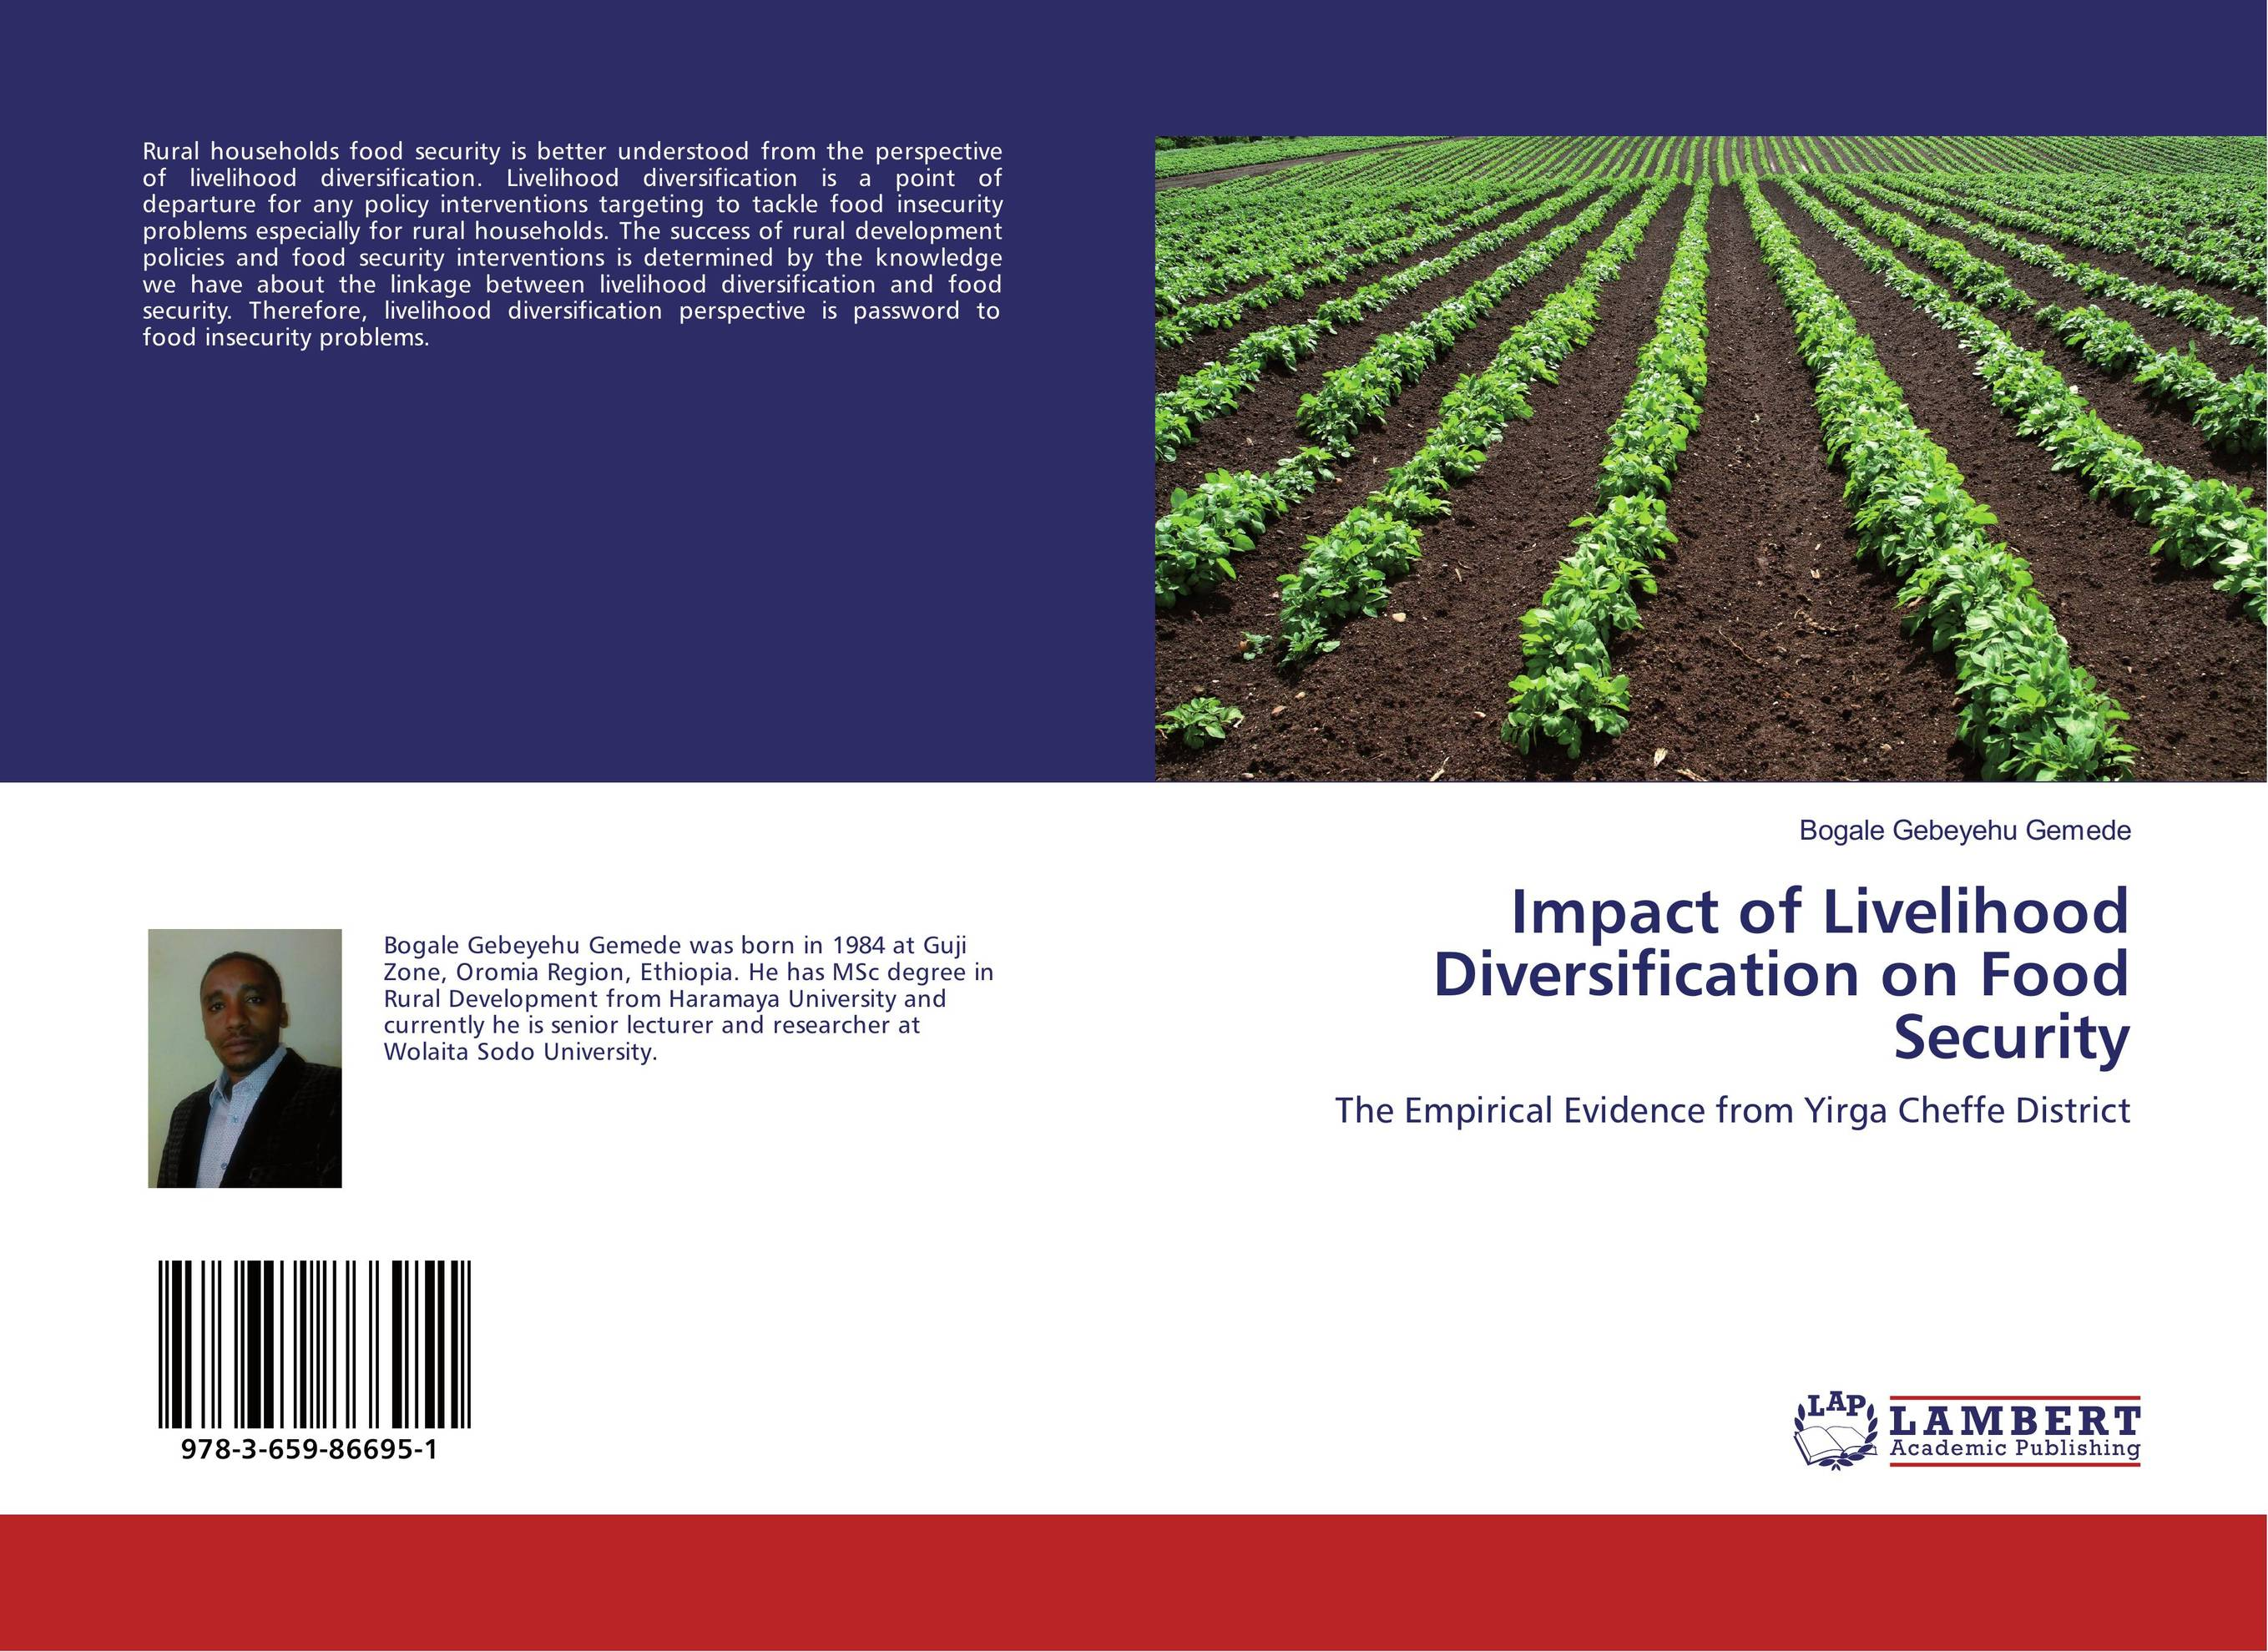 Impact of Livelihood Diversification on Food Security impact of livelihood diversification on food security